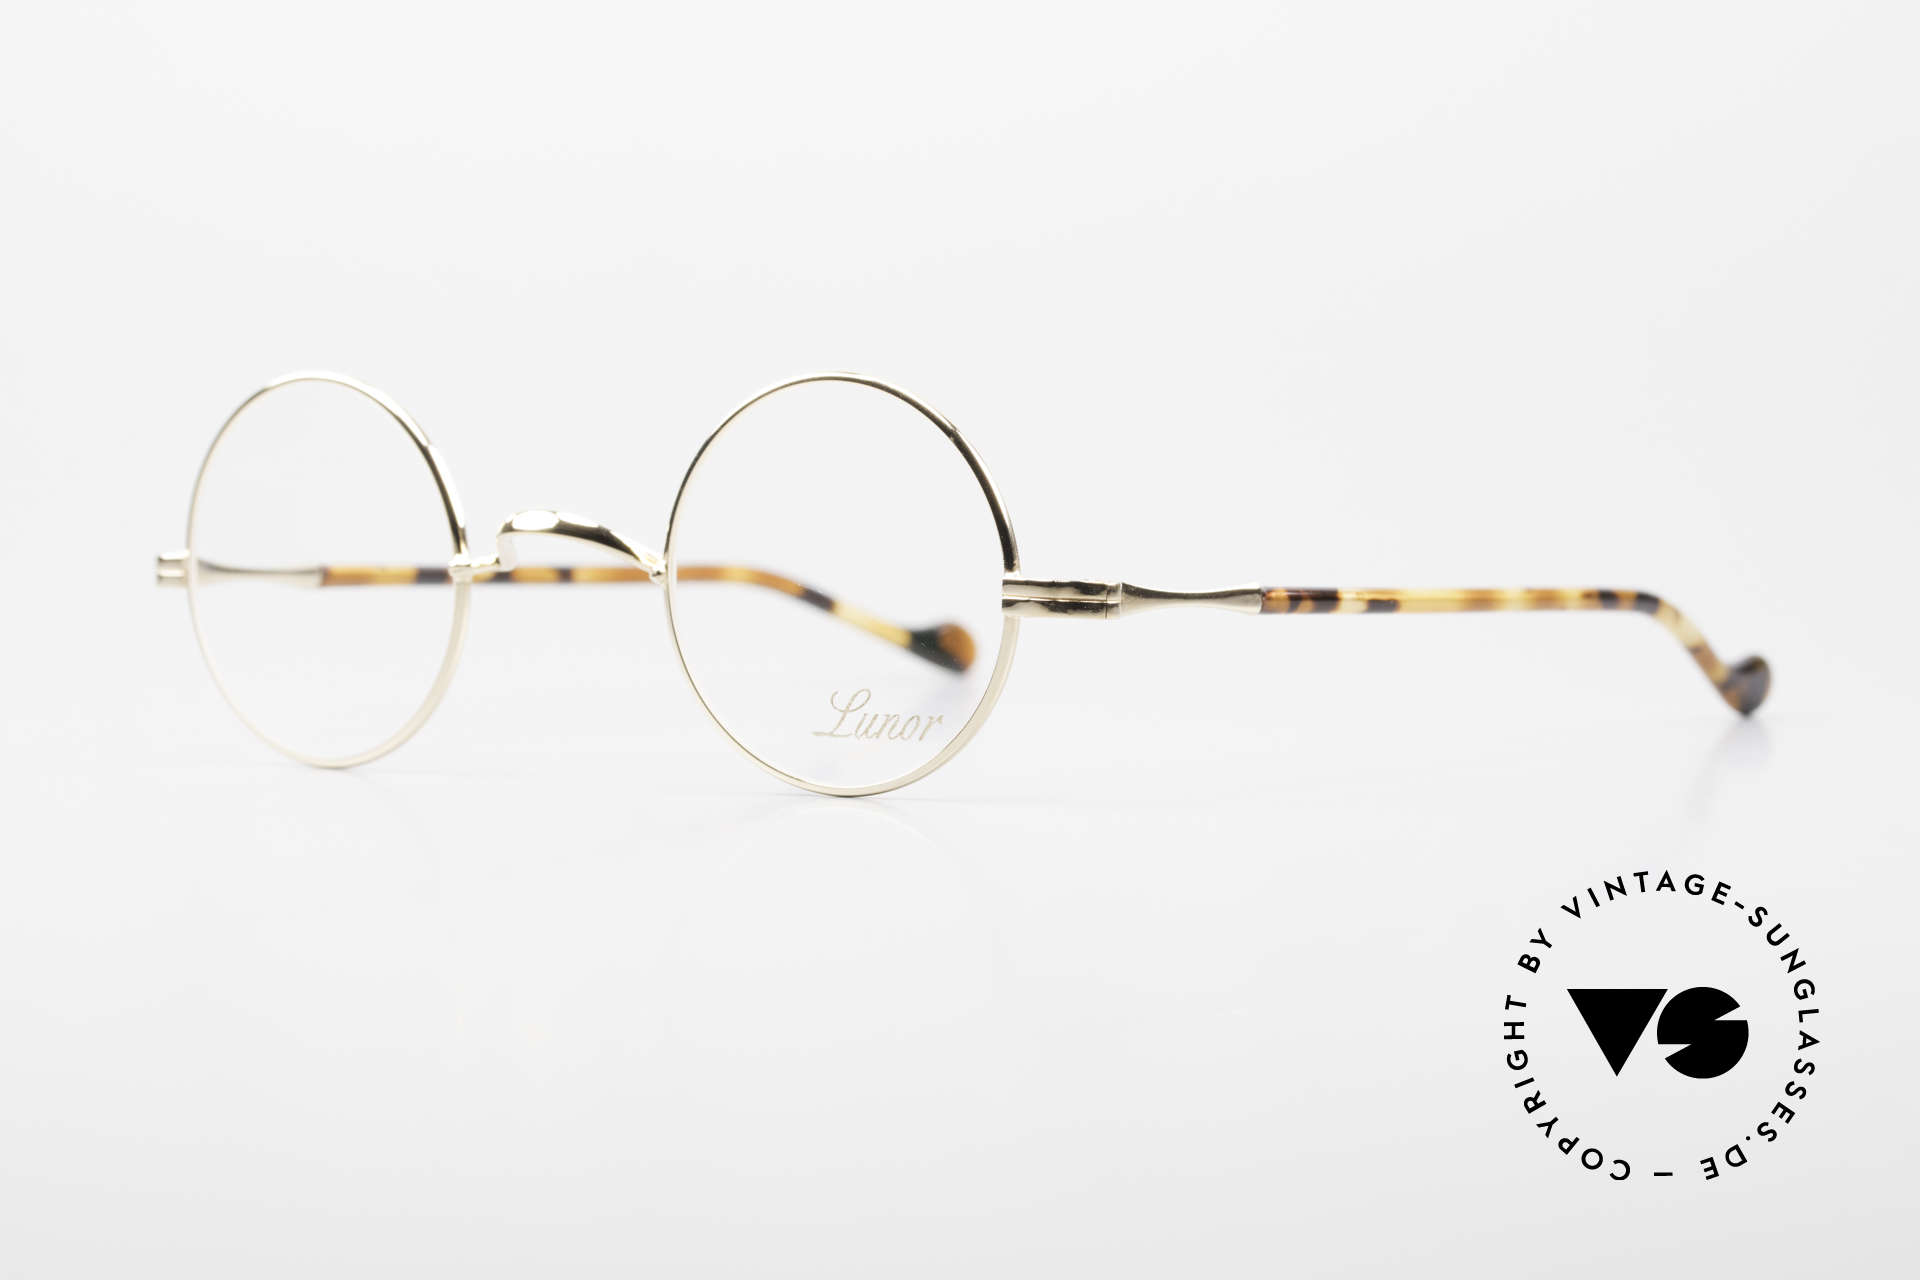 Lunor II A 12 Round Eyeglasses Gold Plated, precious 22ct GOLD-PLATED, tangible TOP-notch quality, Made for Men and Women